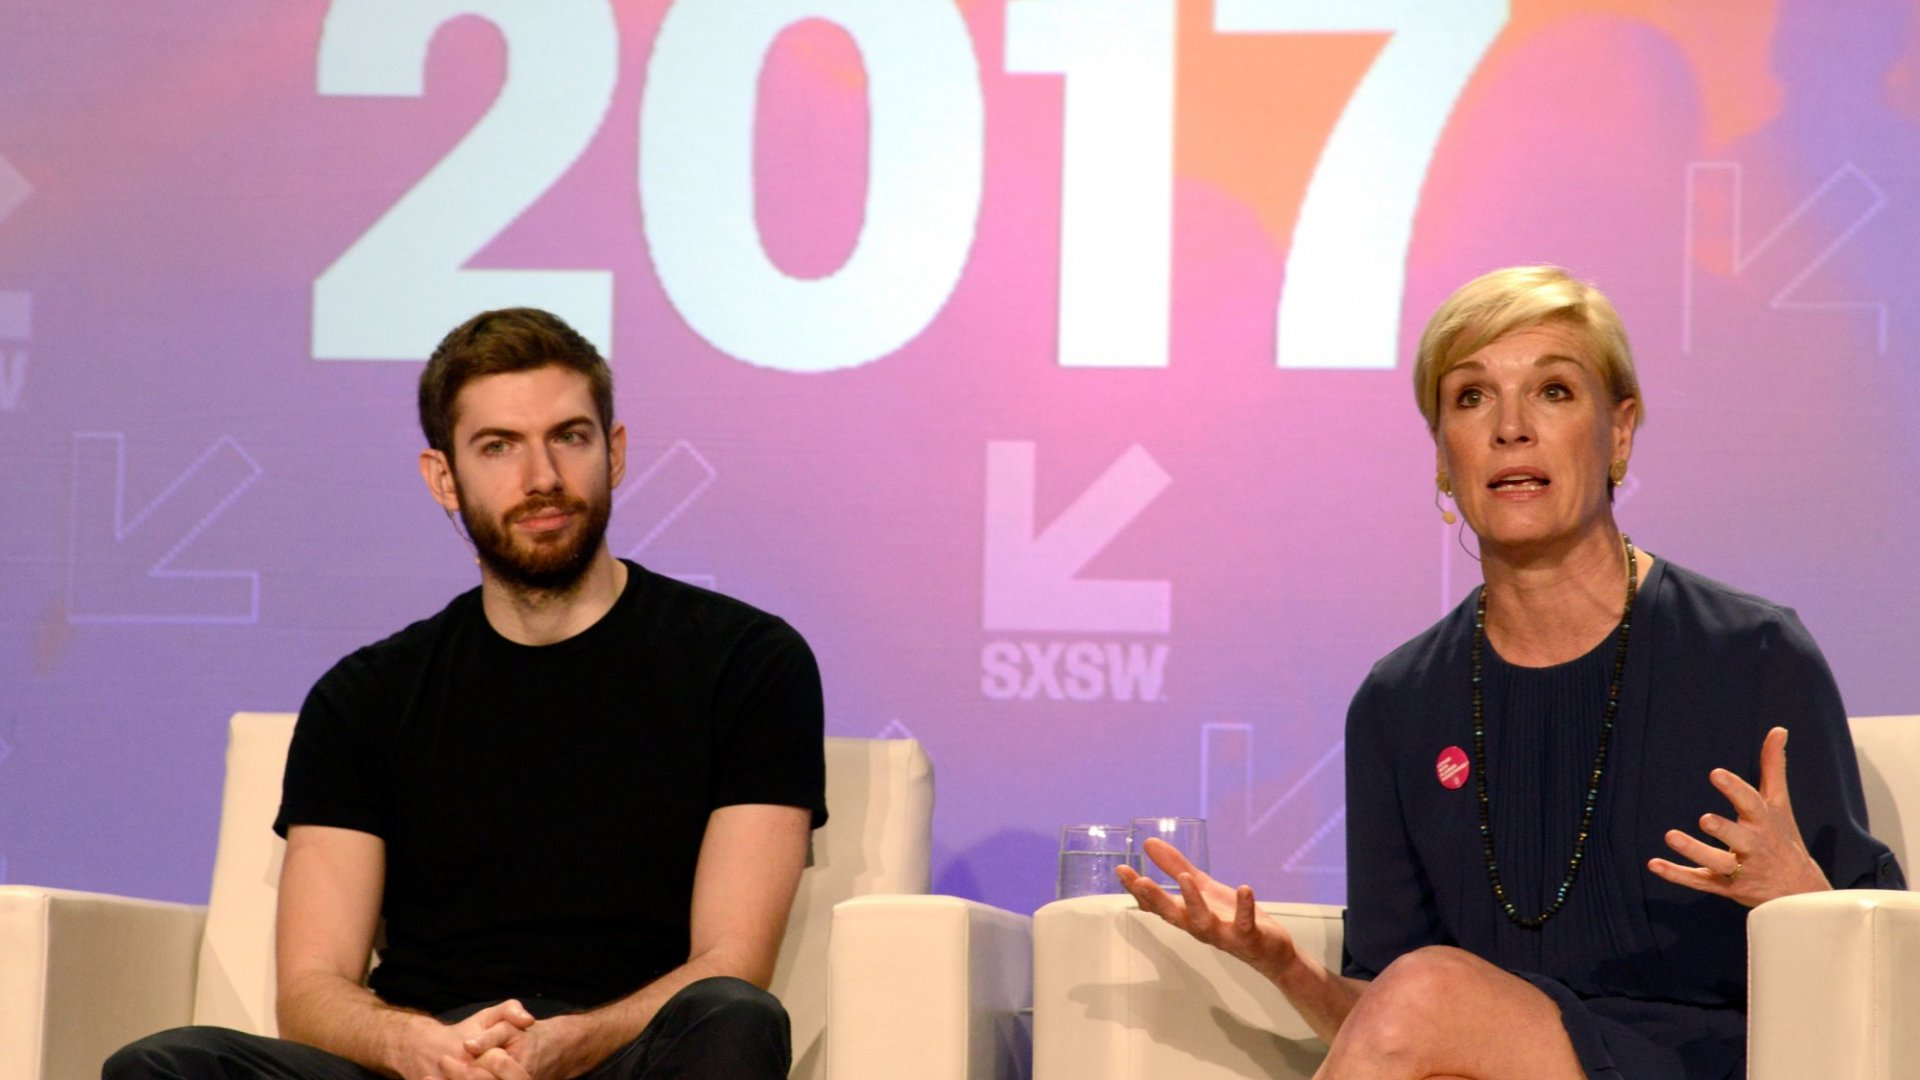 Tumblr and Planned Parenthood Team Up to Launch #TechStandsWithPP at SXSW